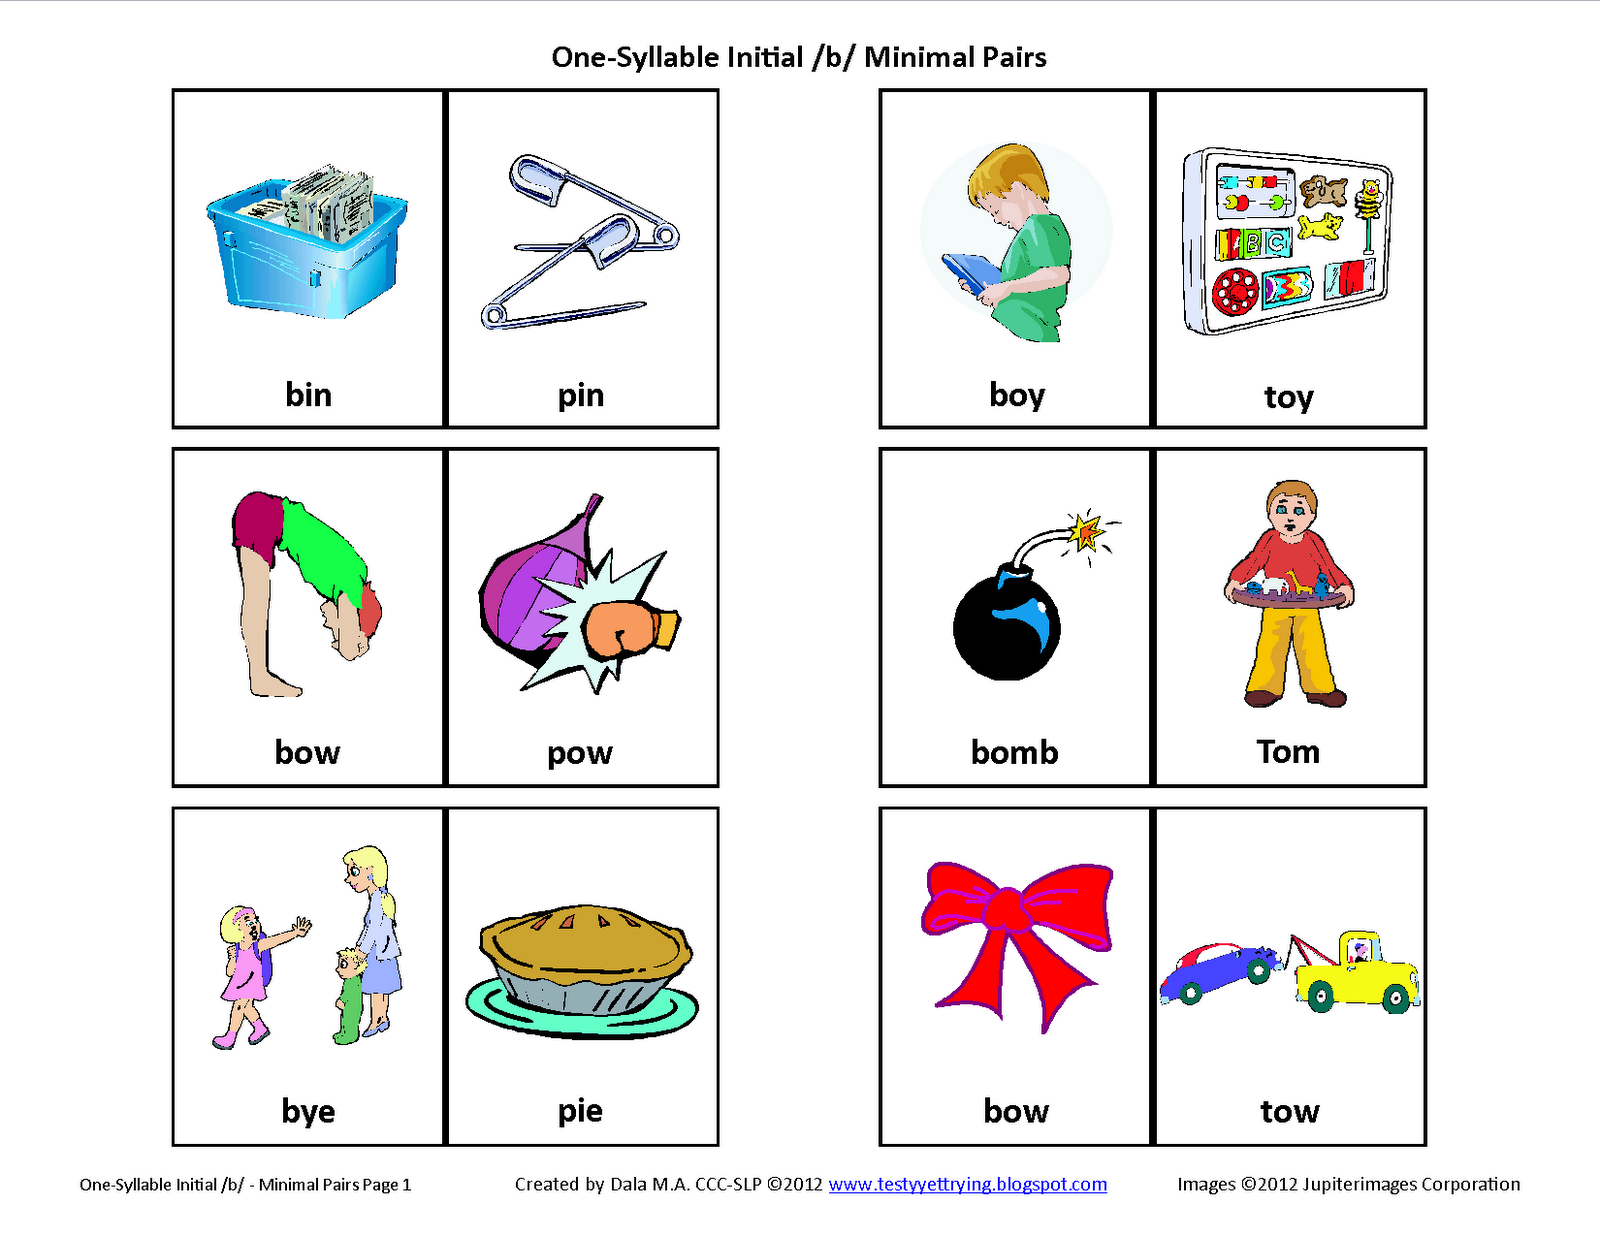 ... Minimal Pairs: Free Speech Therapy Articulation Picture Cards